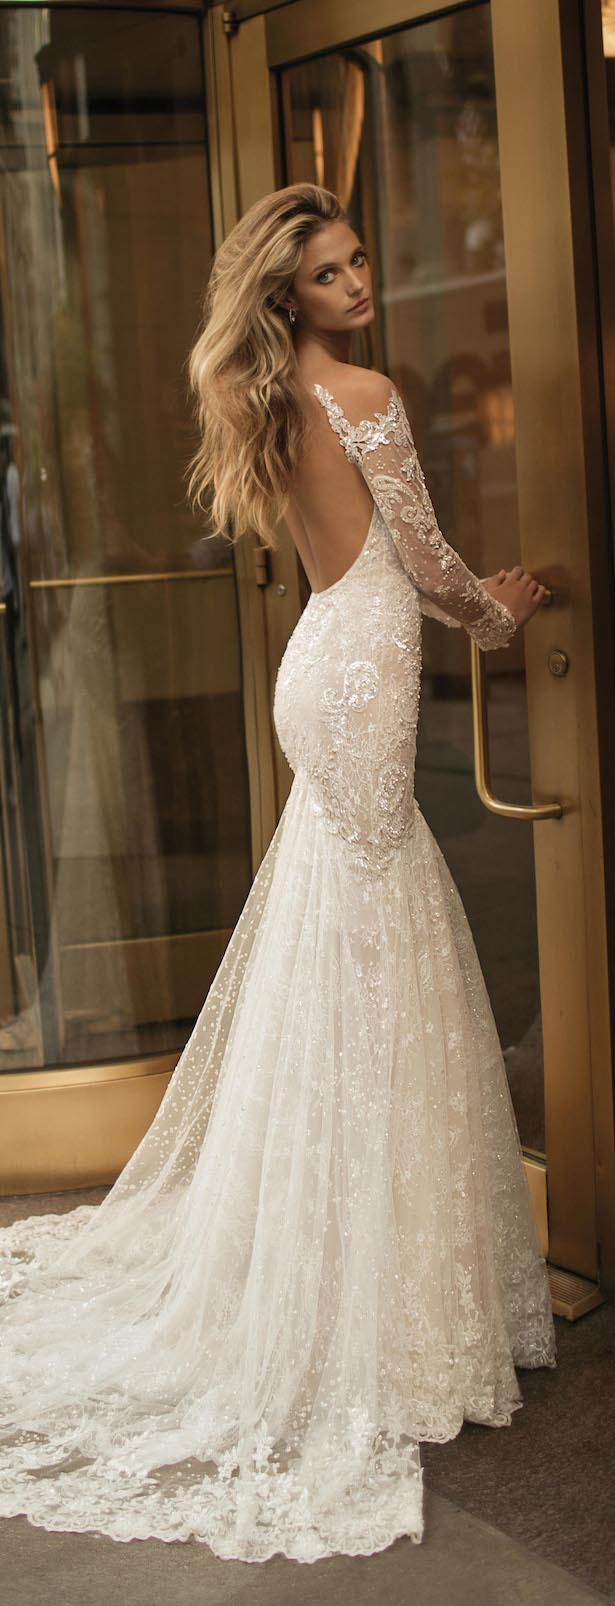 wedding dresses with low back photo - 1